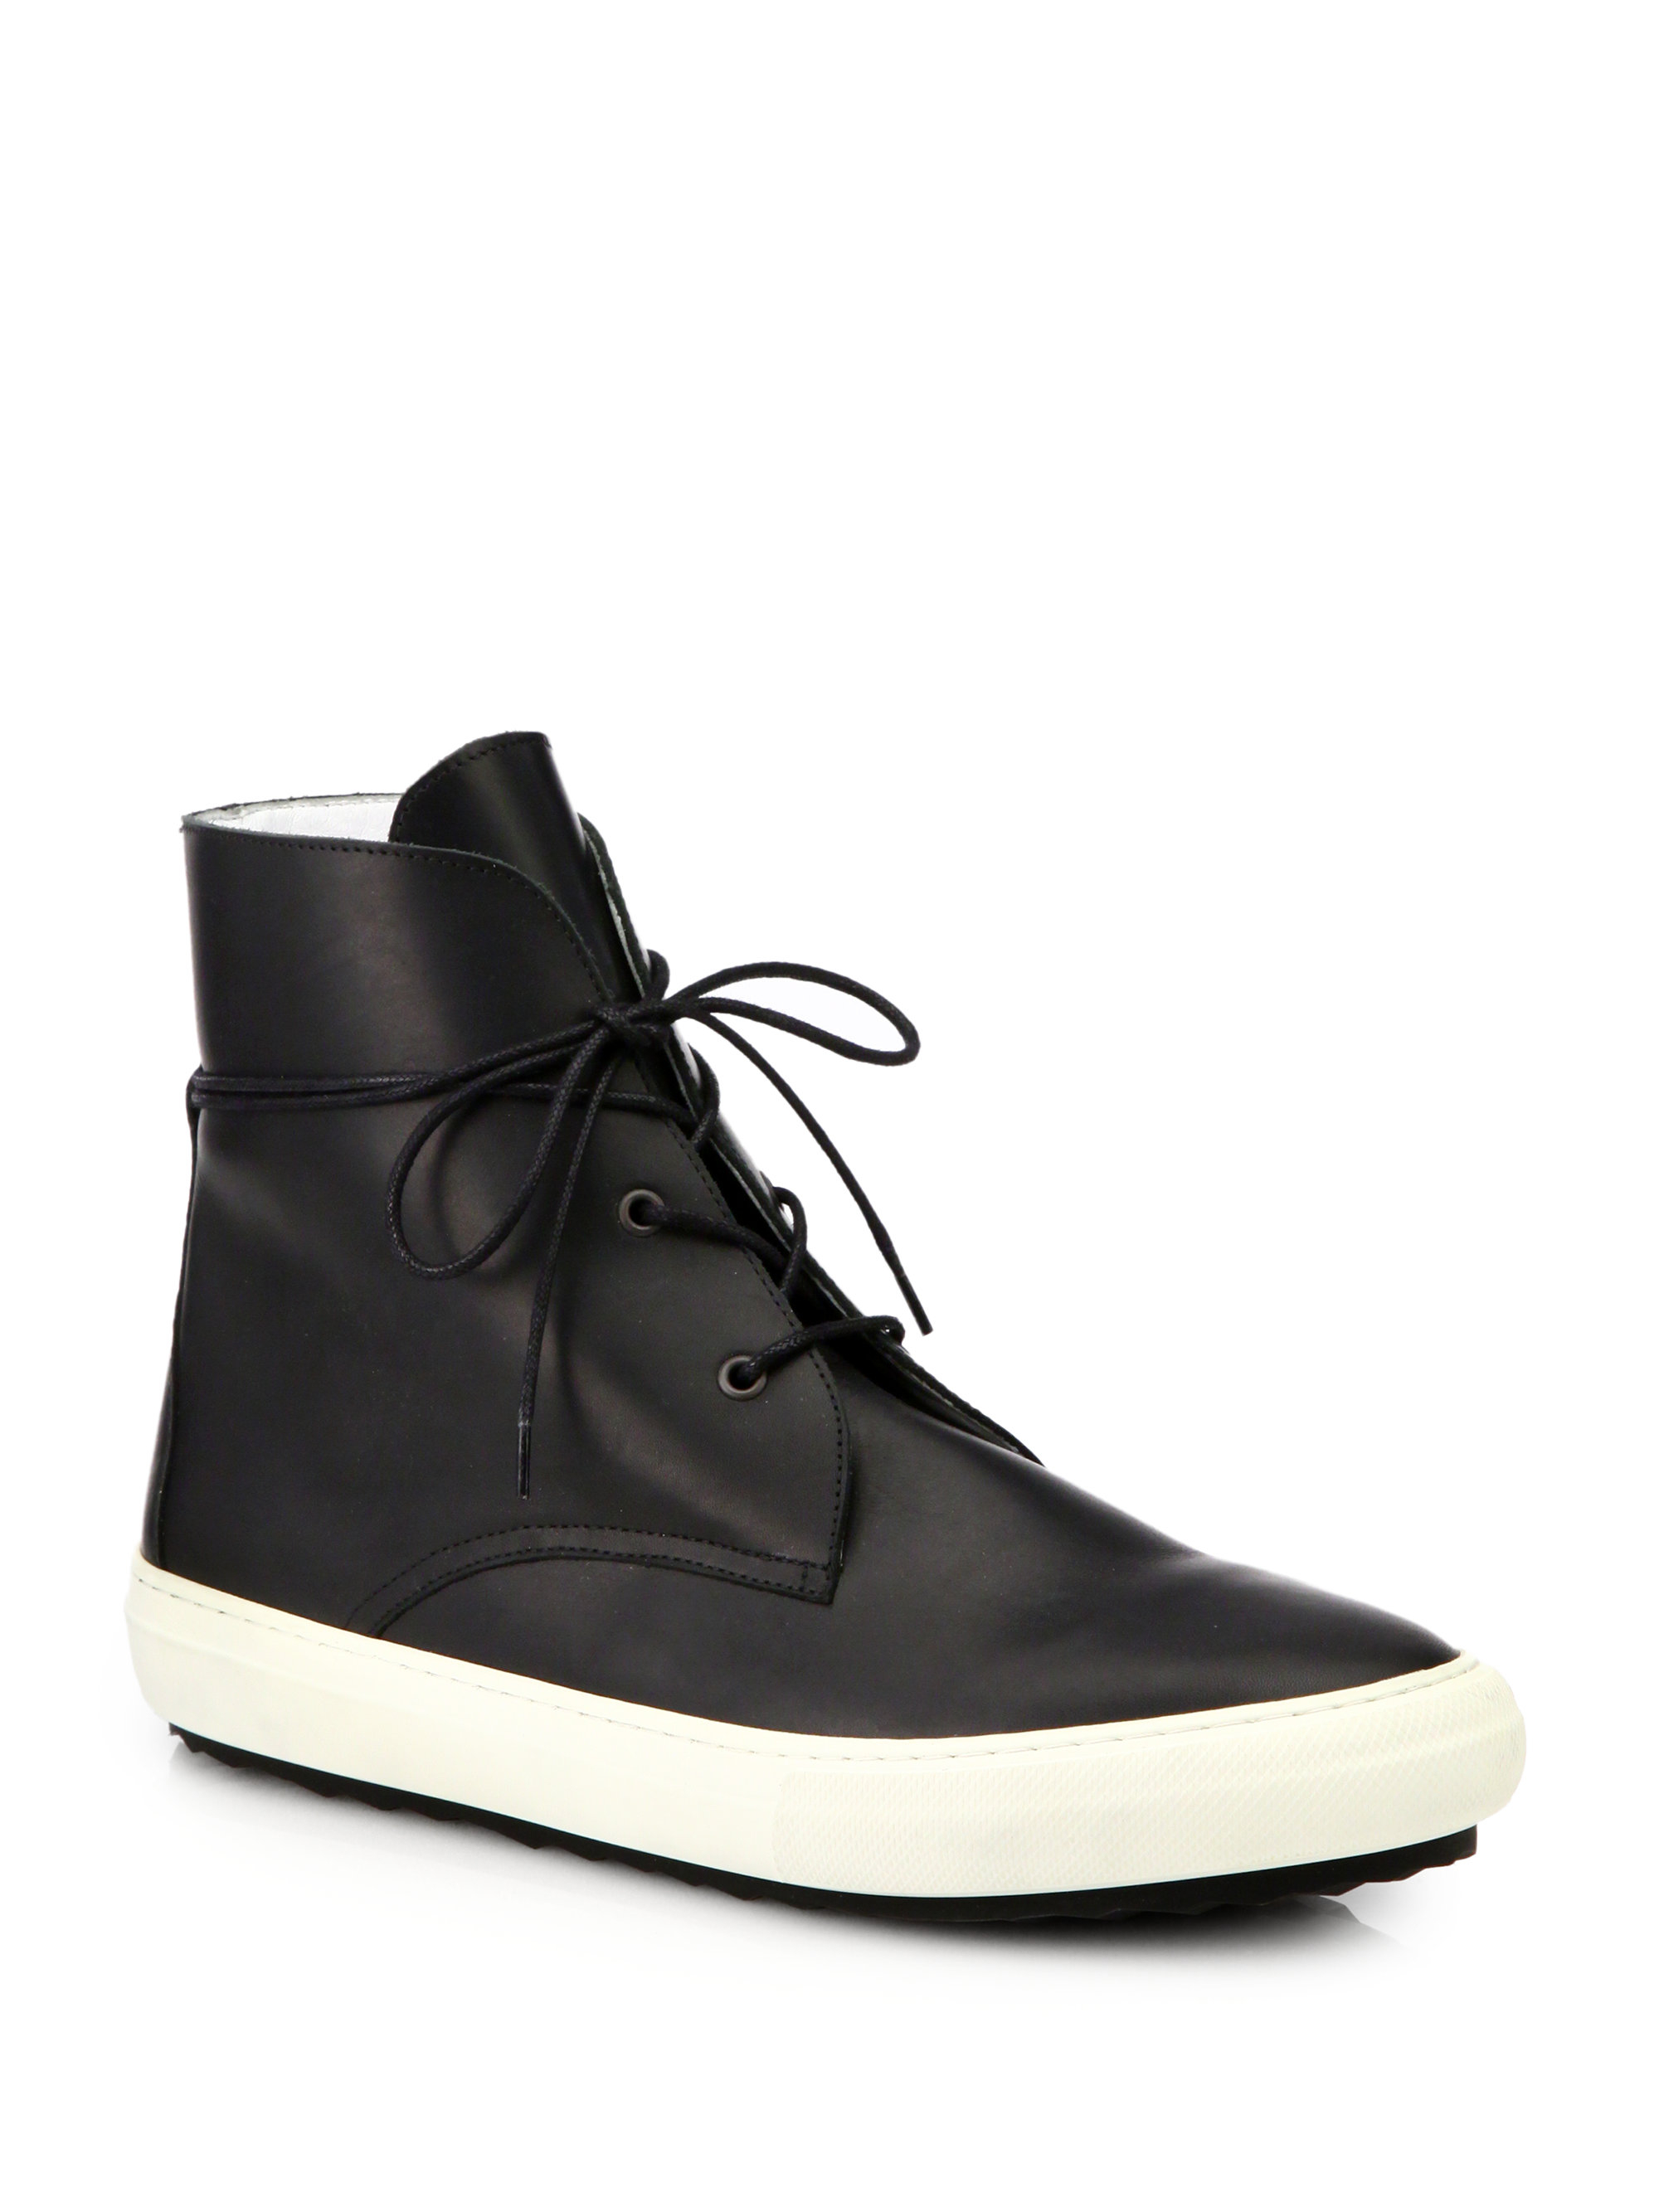 Pierre Hardy Leather High Top Sneakers In Black For Men Lyst